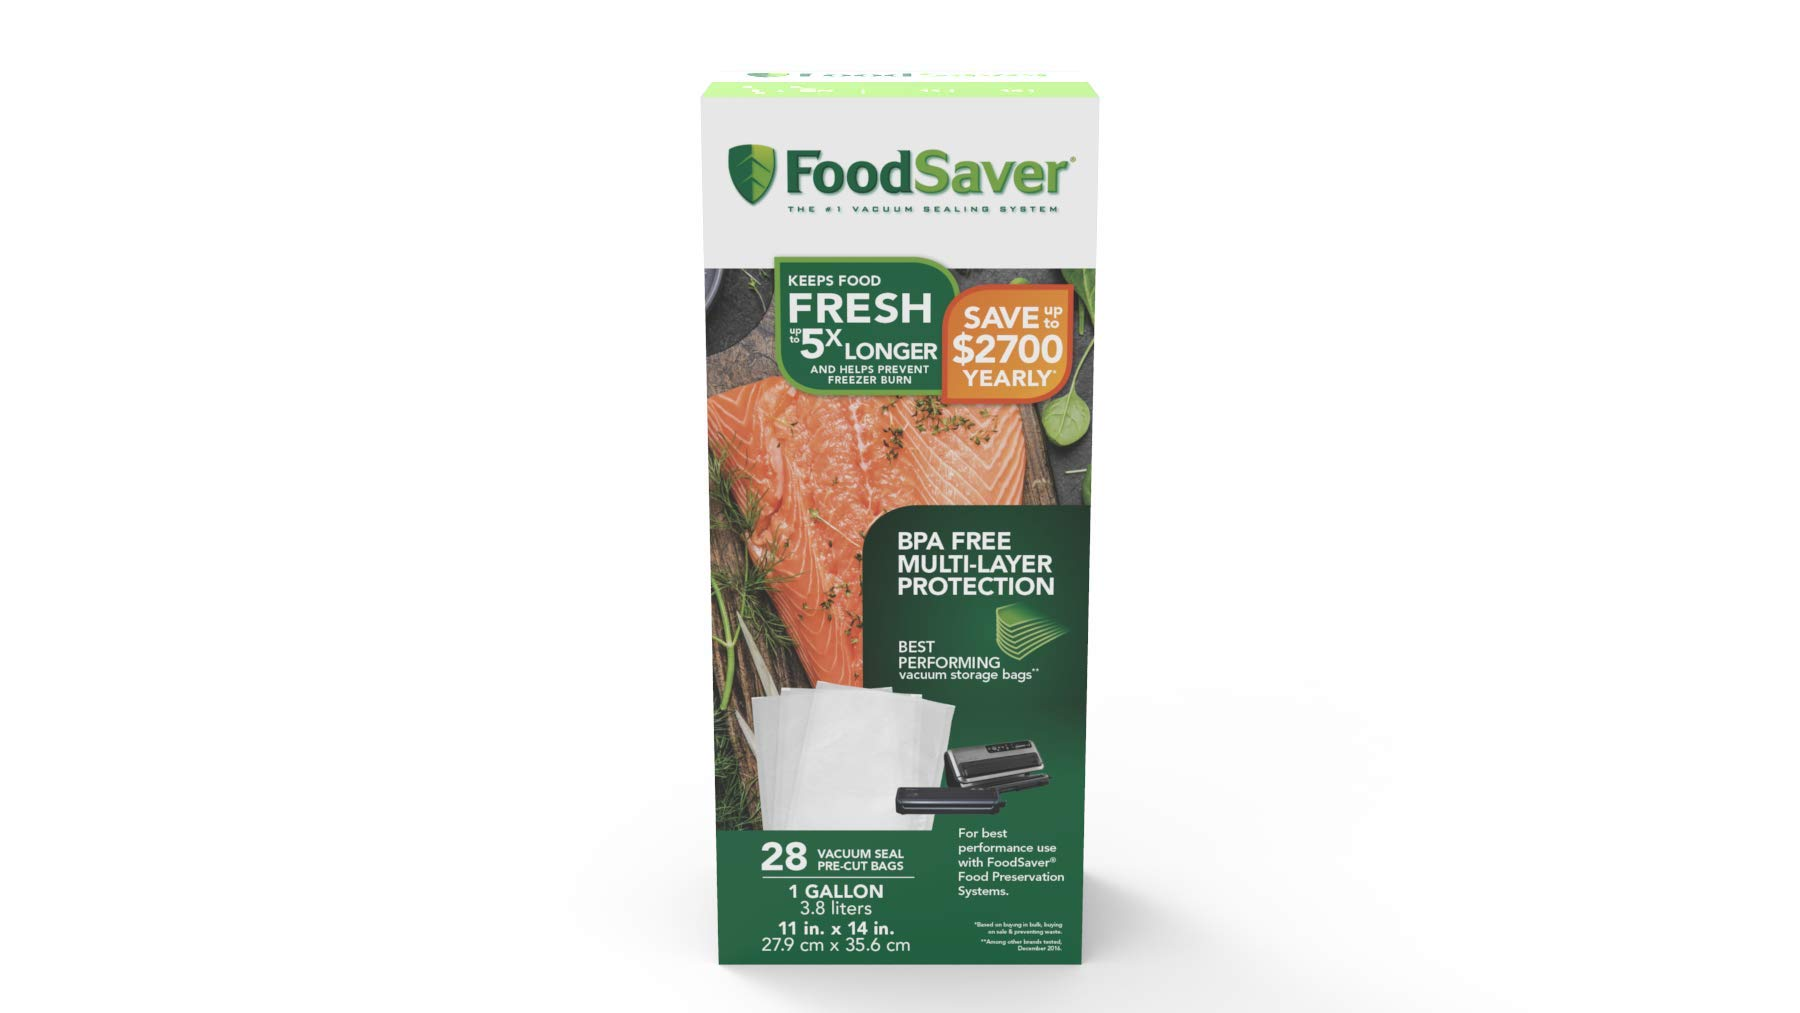 FoodSaver 1-Gallon Precut Vacuum Seal Bags with BPA-Free Multilayer Construction for Food Preservation, 28 Count by FoodSaver